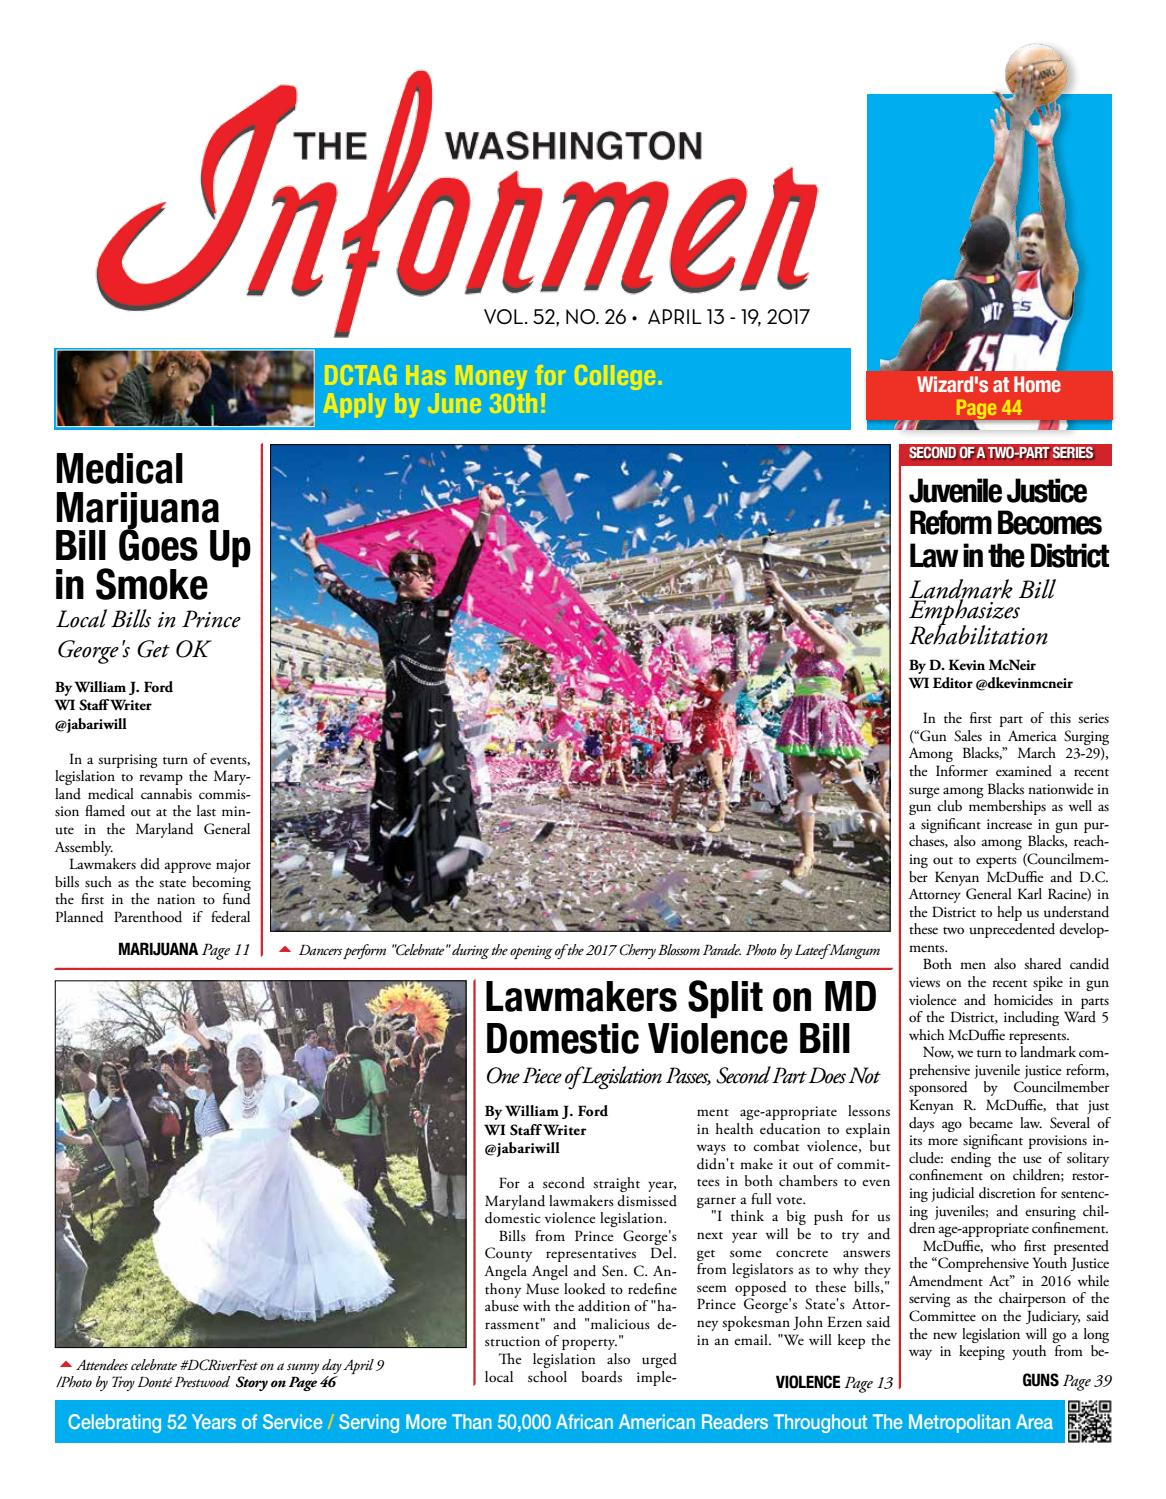 The Washington Informer - April 13 2017 by The Washington Informer - issuu